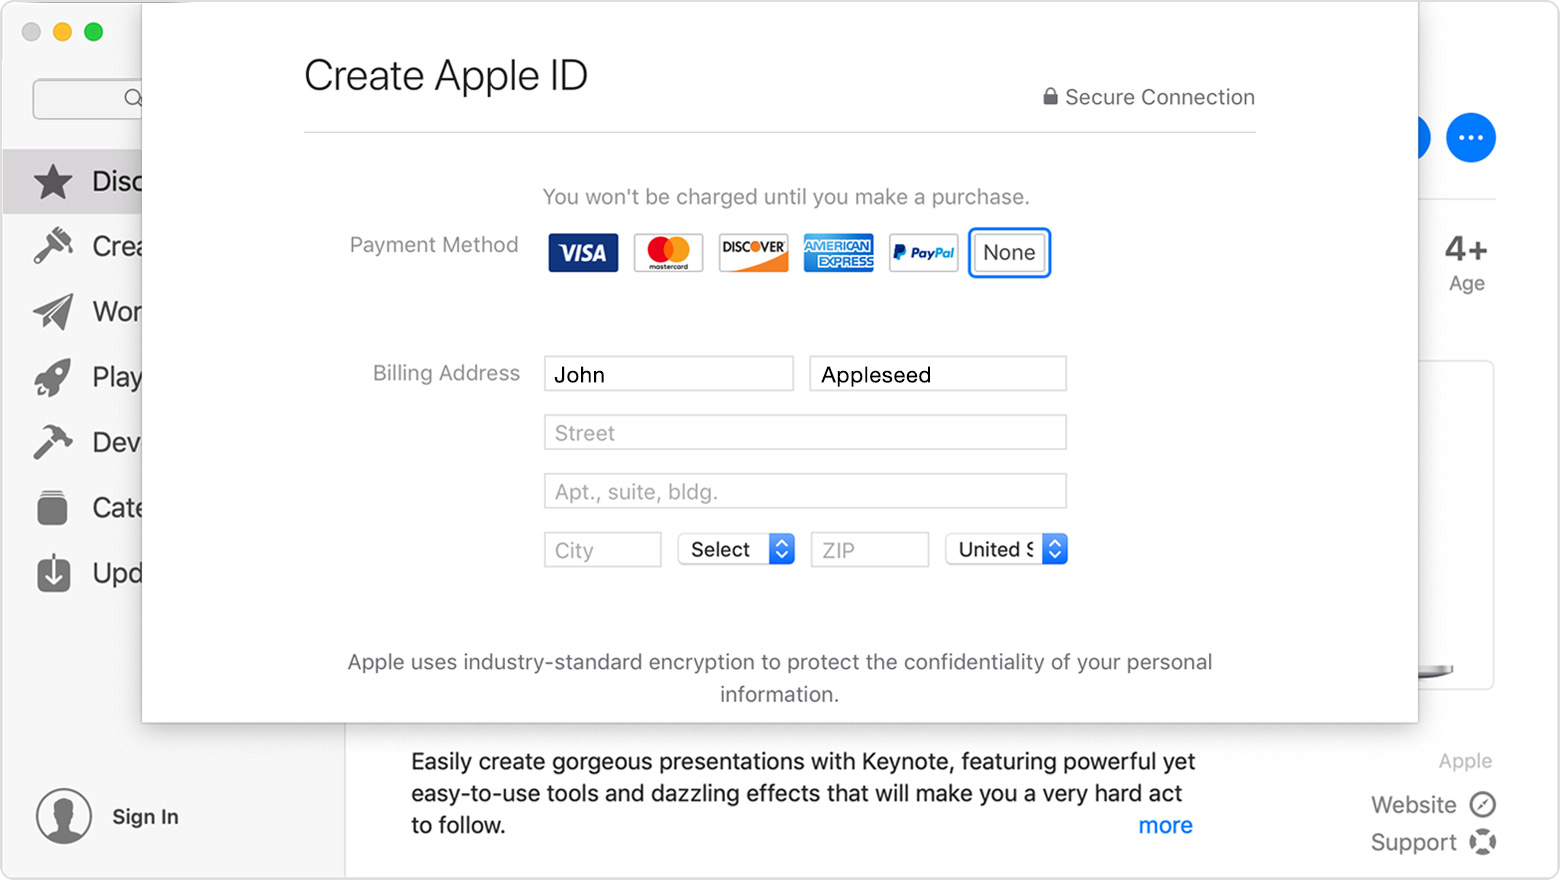 A window of the App Store on Mac showing the Keynote app information page in the background and a Create Apple ID pop-up in the foreground. None is selected as the payment method.